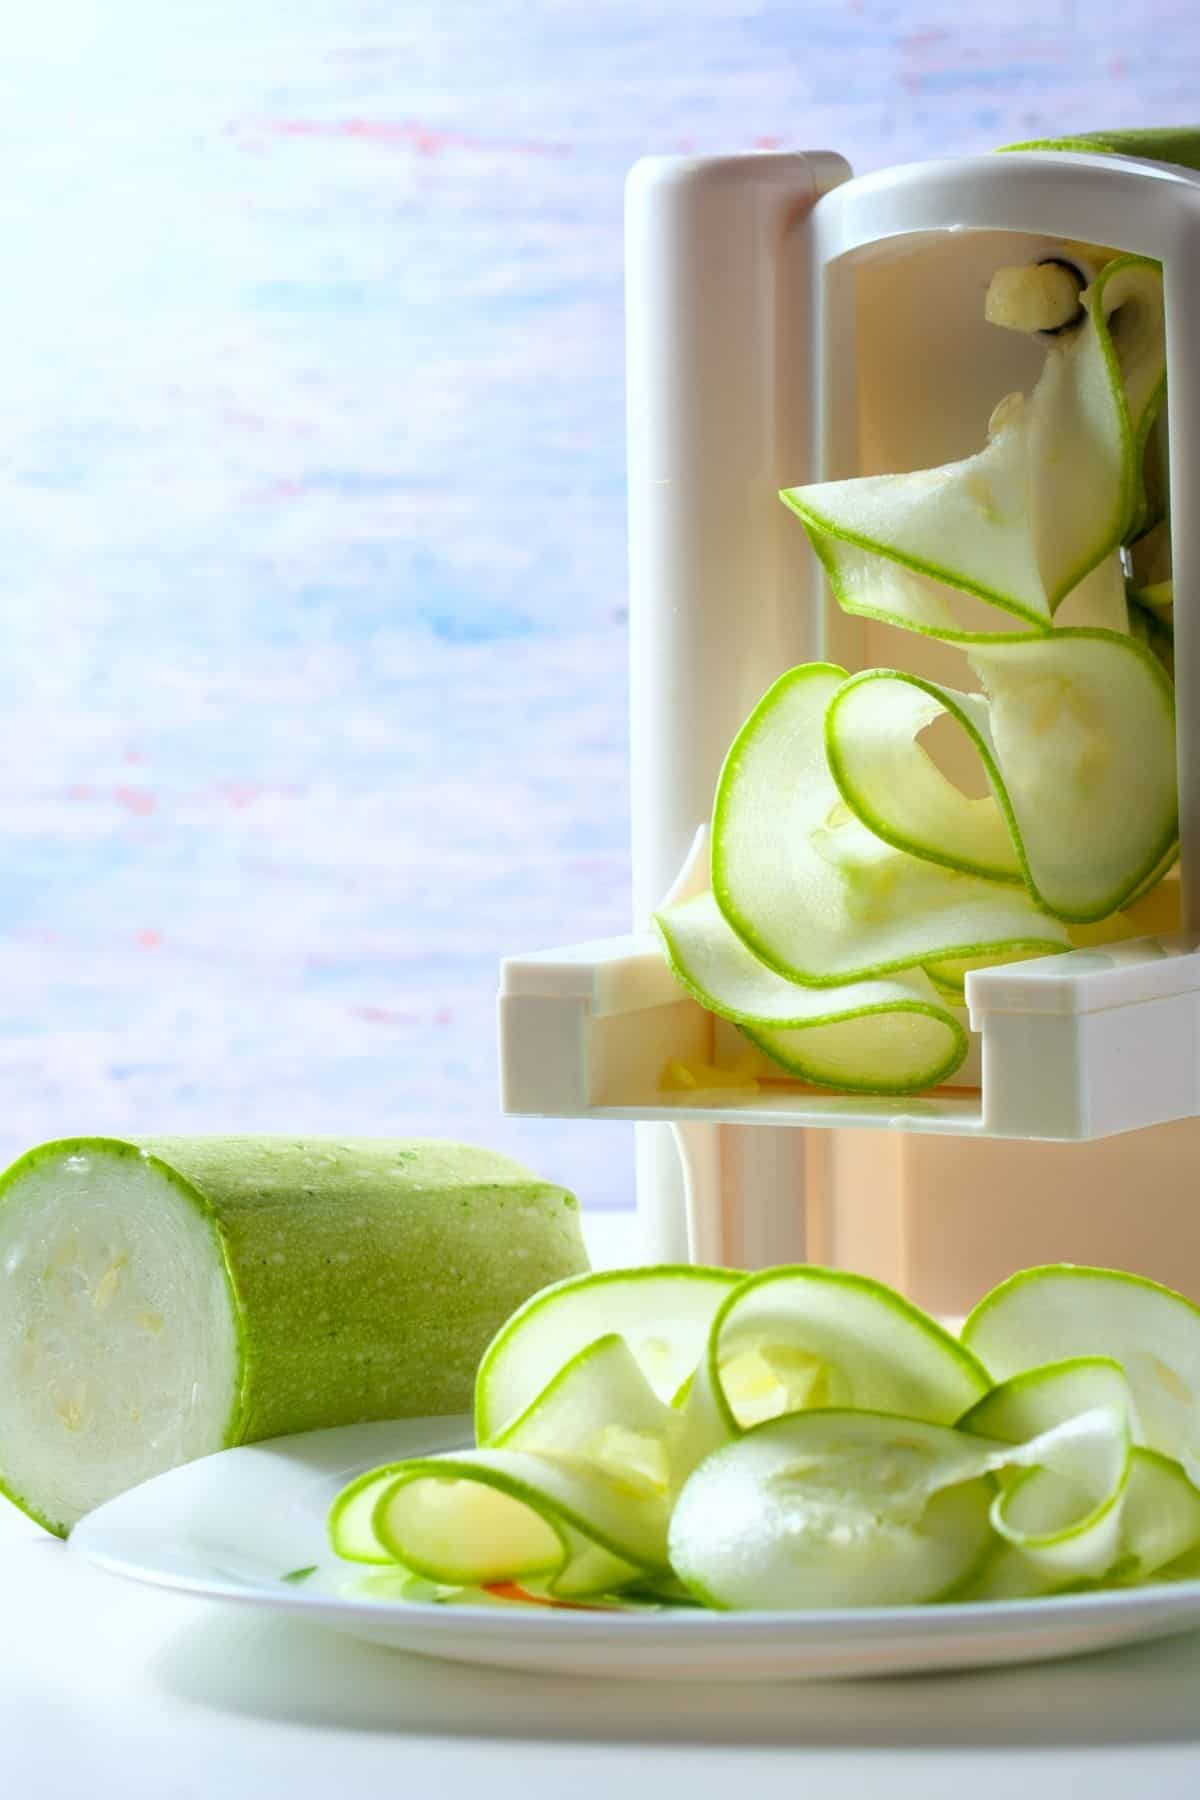 Making zucchini ribbons with a spiralizer